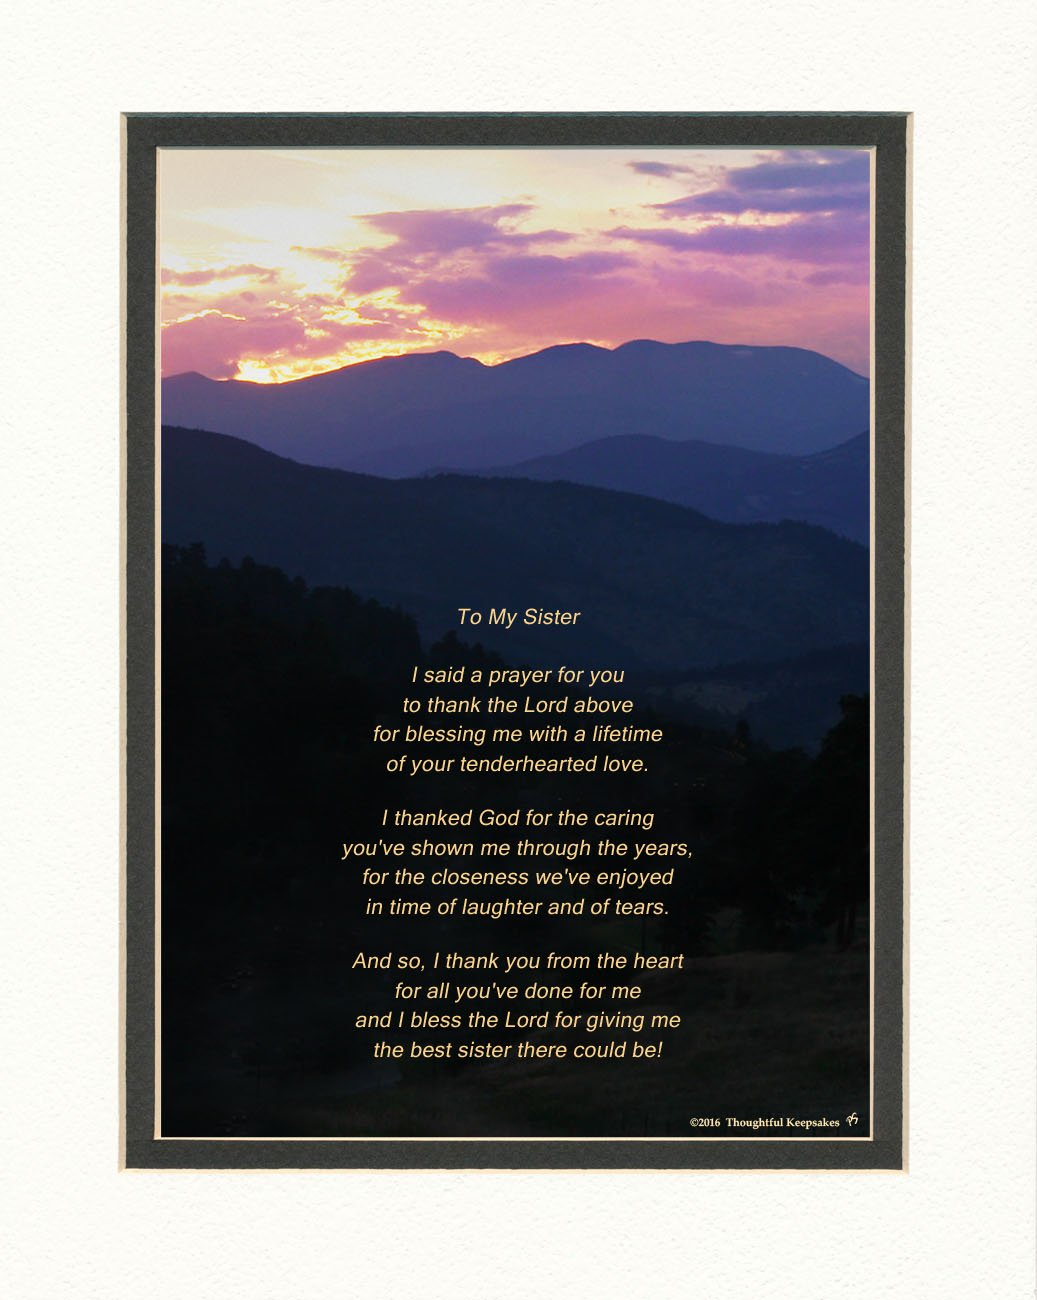 Sister Gift with ''Thank You Prayer for Best Sister'' Poem. Mts Sunset Photo, 8x10 Double Matted. Special Birthday, Christmas Gift for Sister.